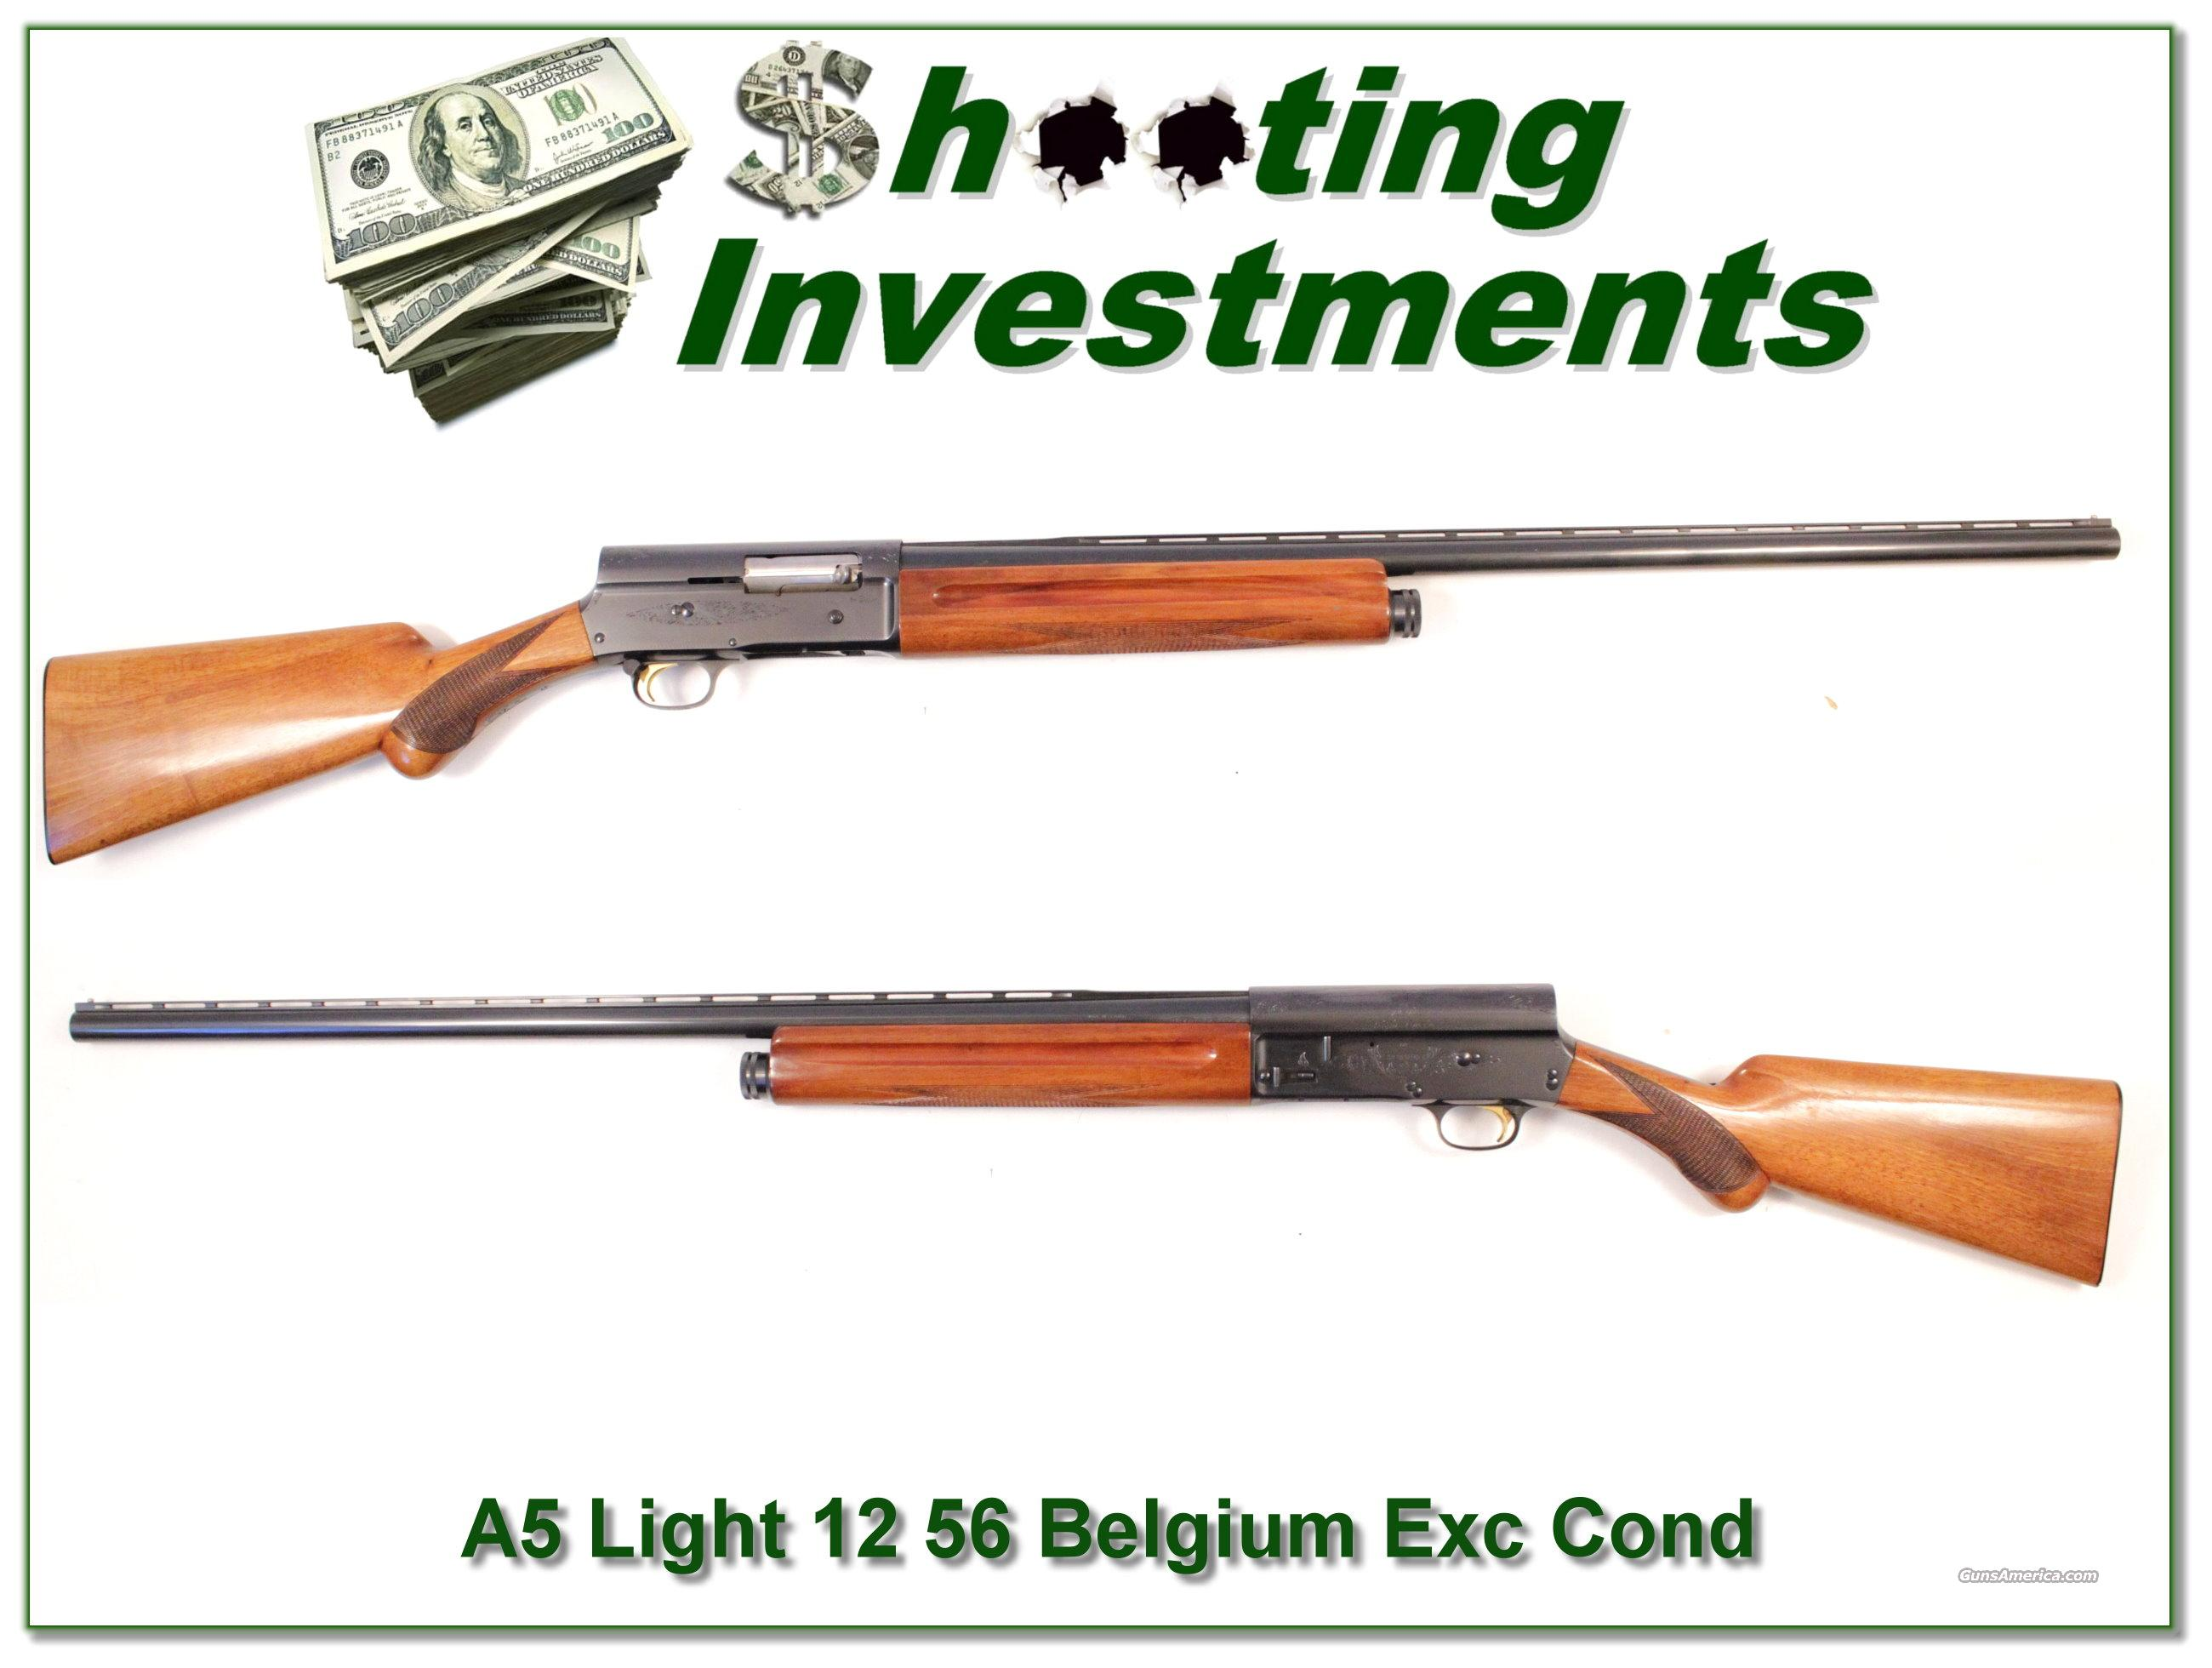 Browning A5 Light 12 56 Belgium Exc Cond  Guns > Shotguns > Browning Shotguns > Autoloaders > Hunting